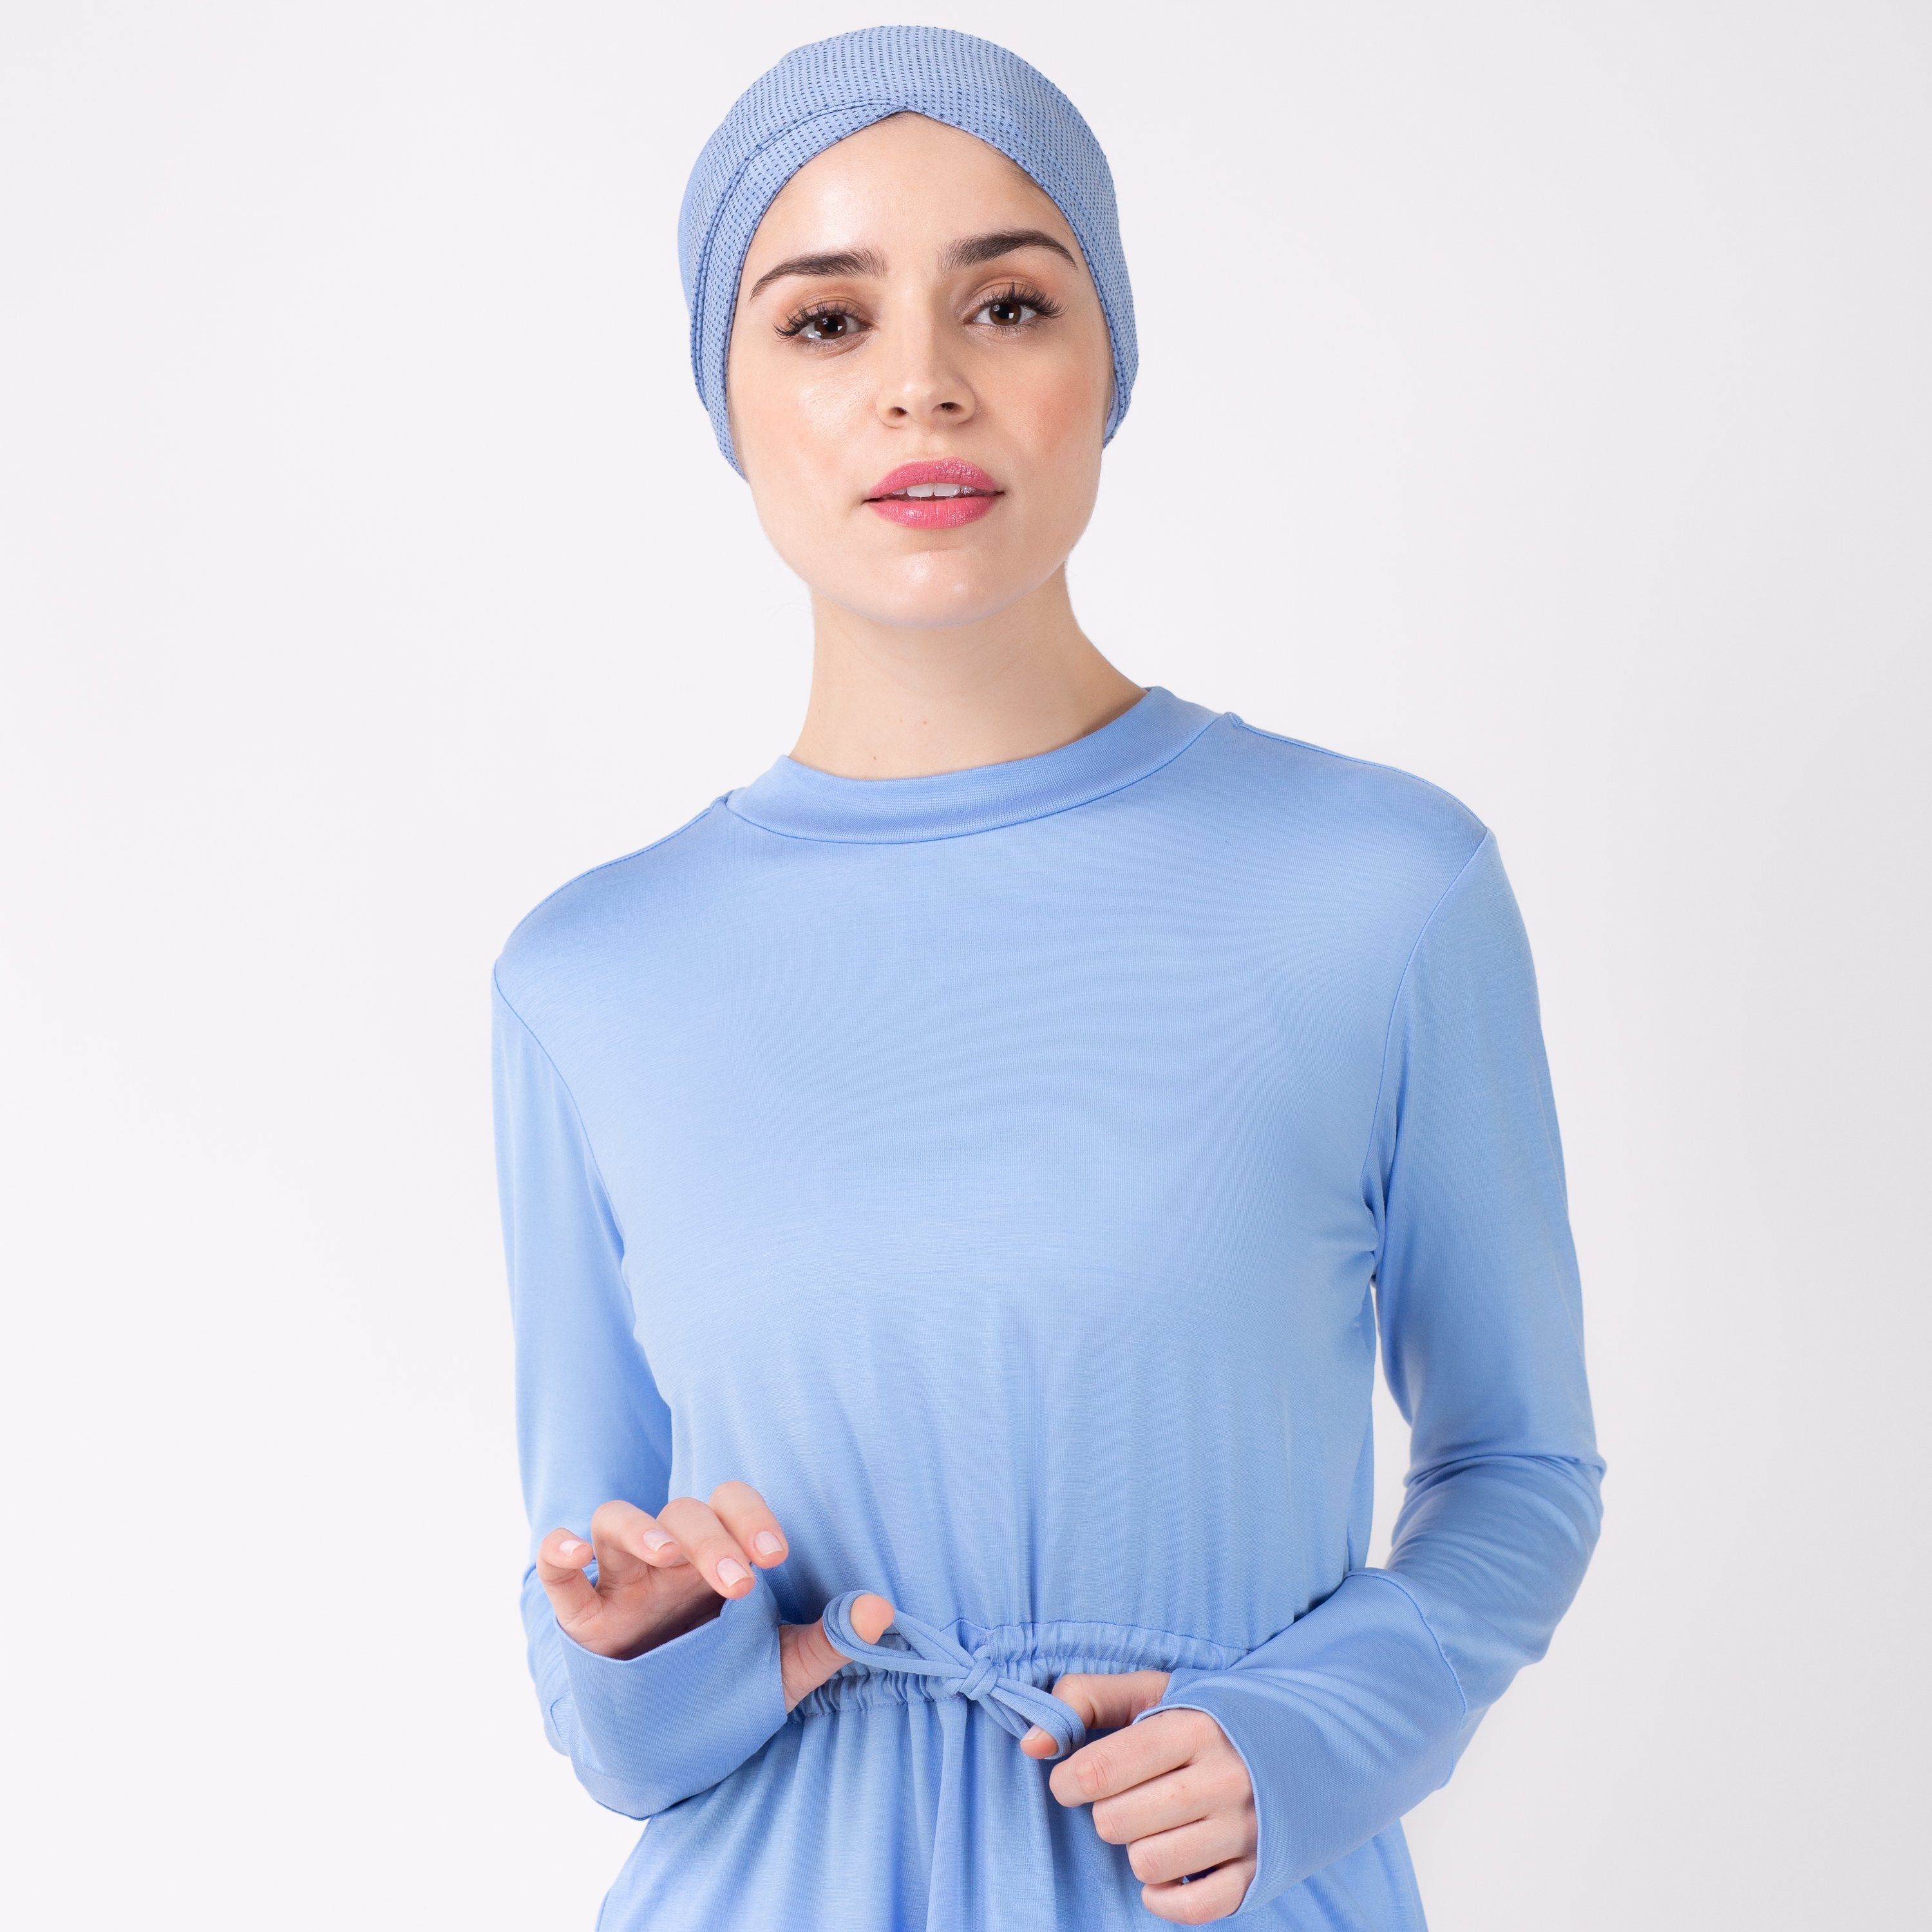 Close up of woman tying the modest, sky blue HAWA drawstring tee shirt against a white back drop.